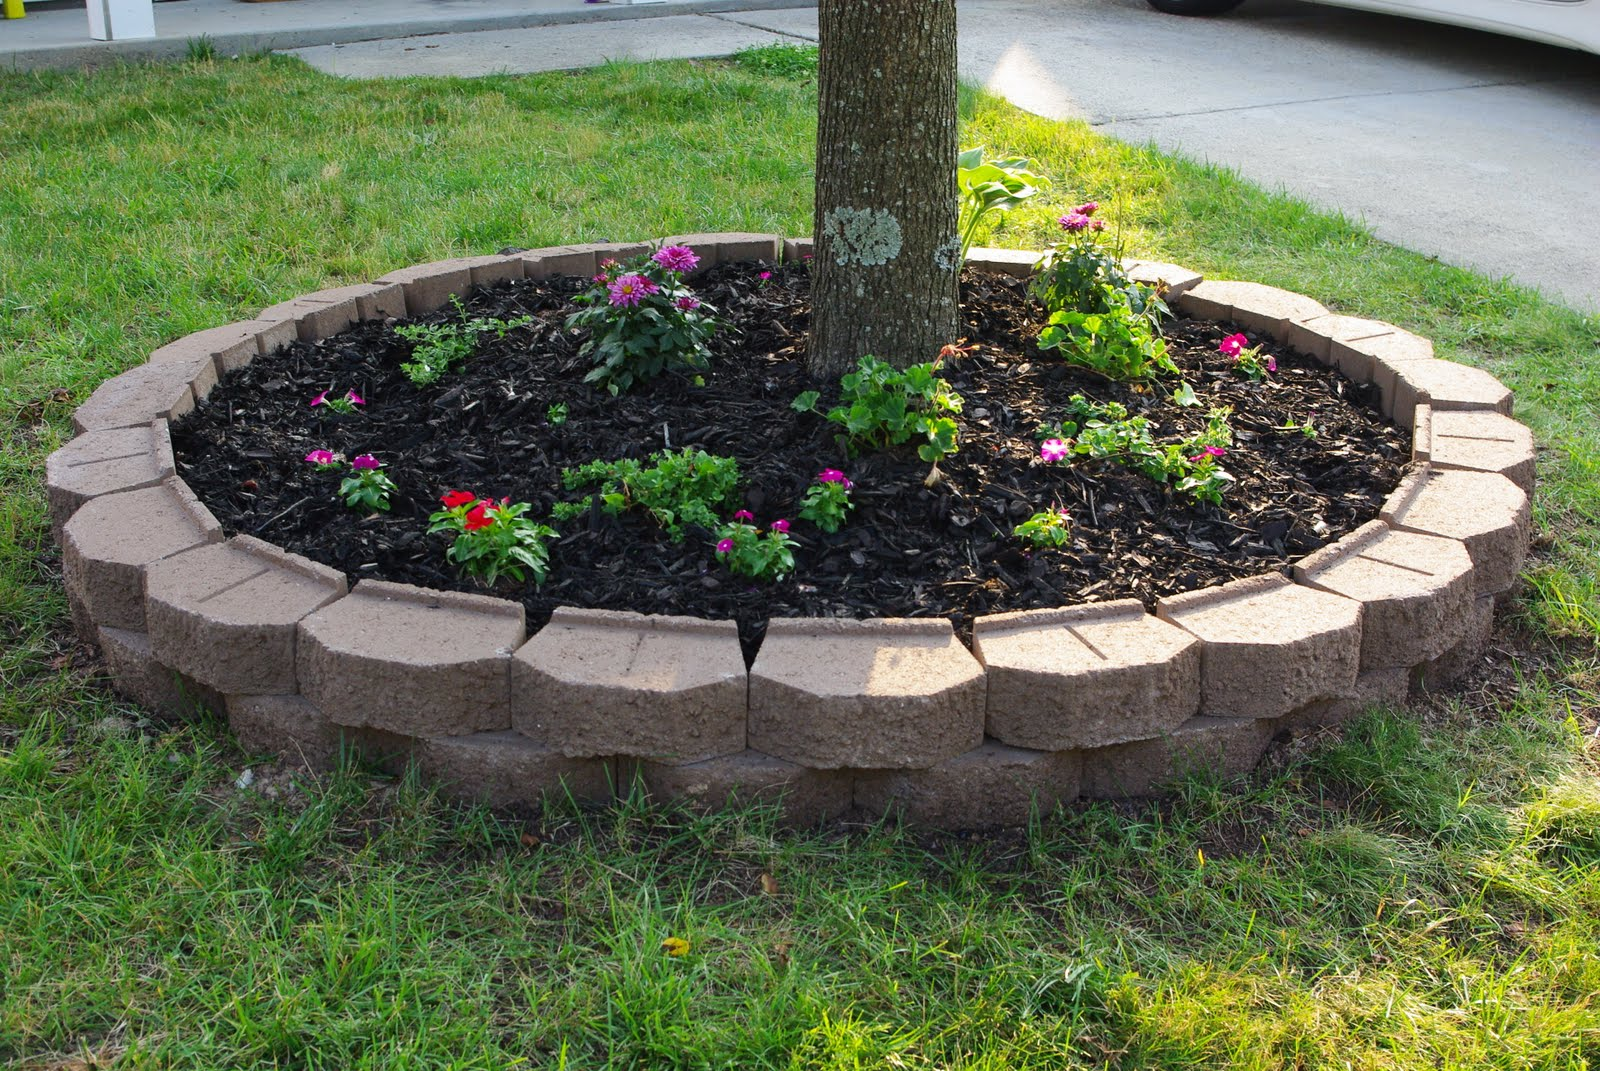 Tree Landscaping Ideas Front Yard Part - 34: Landscape Edging Design Ideas: Designs For Garden Flower Beds - Twiwa